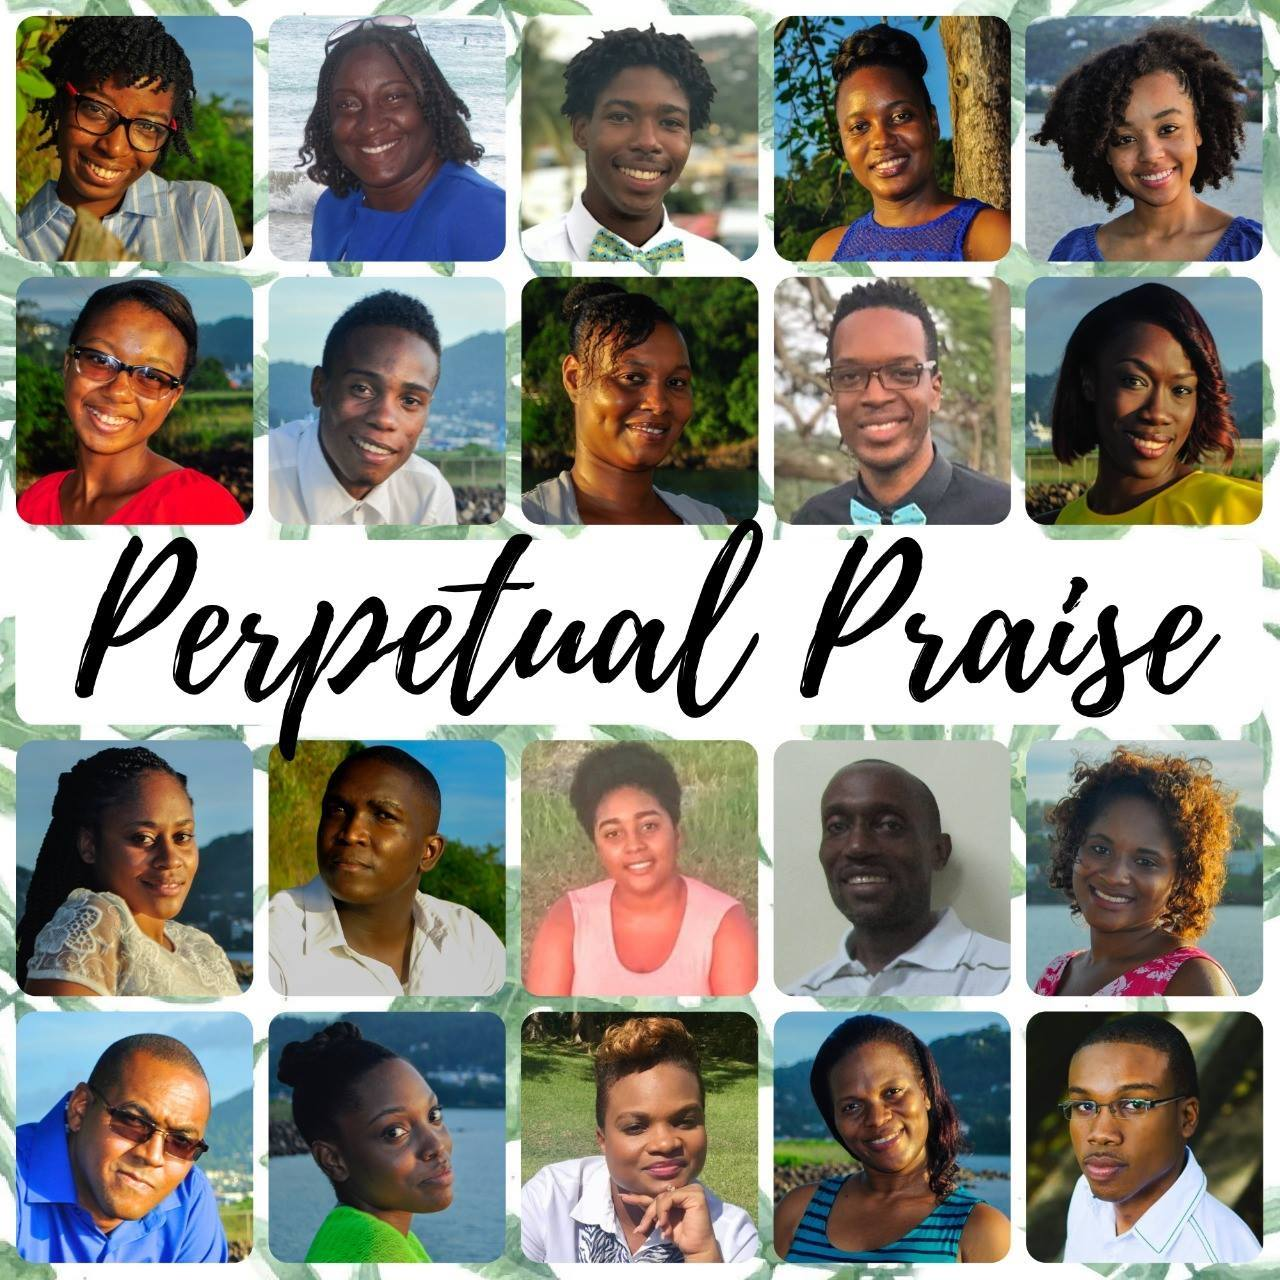 perpetual praise songs of praise concert 7th Day Adventist things to do st lucia